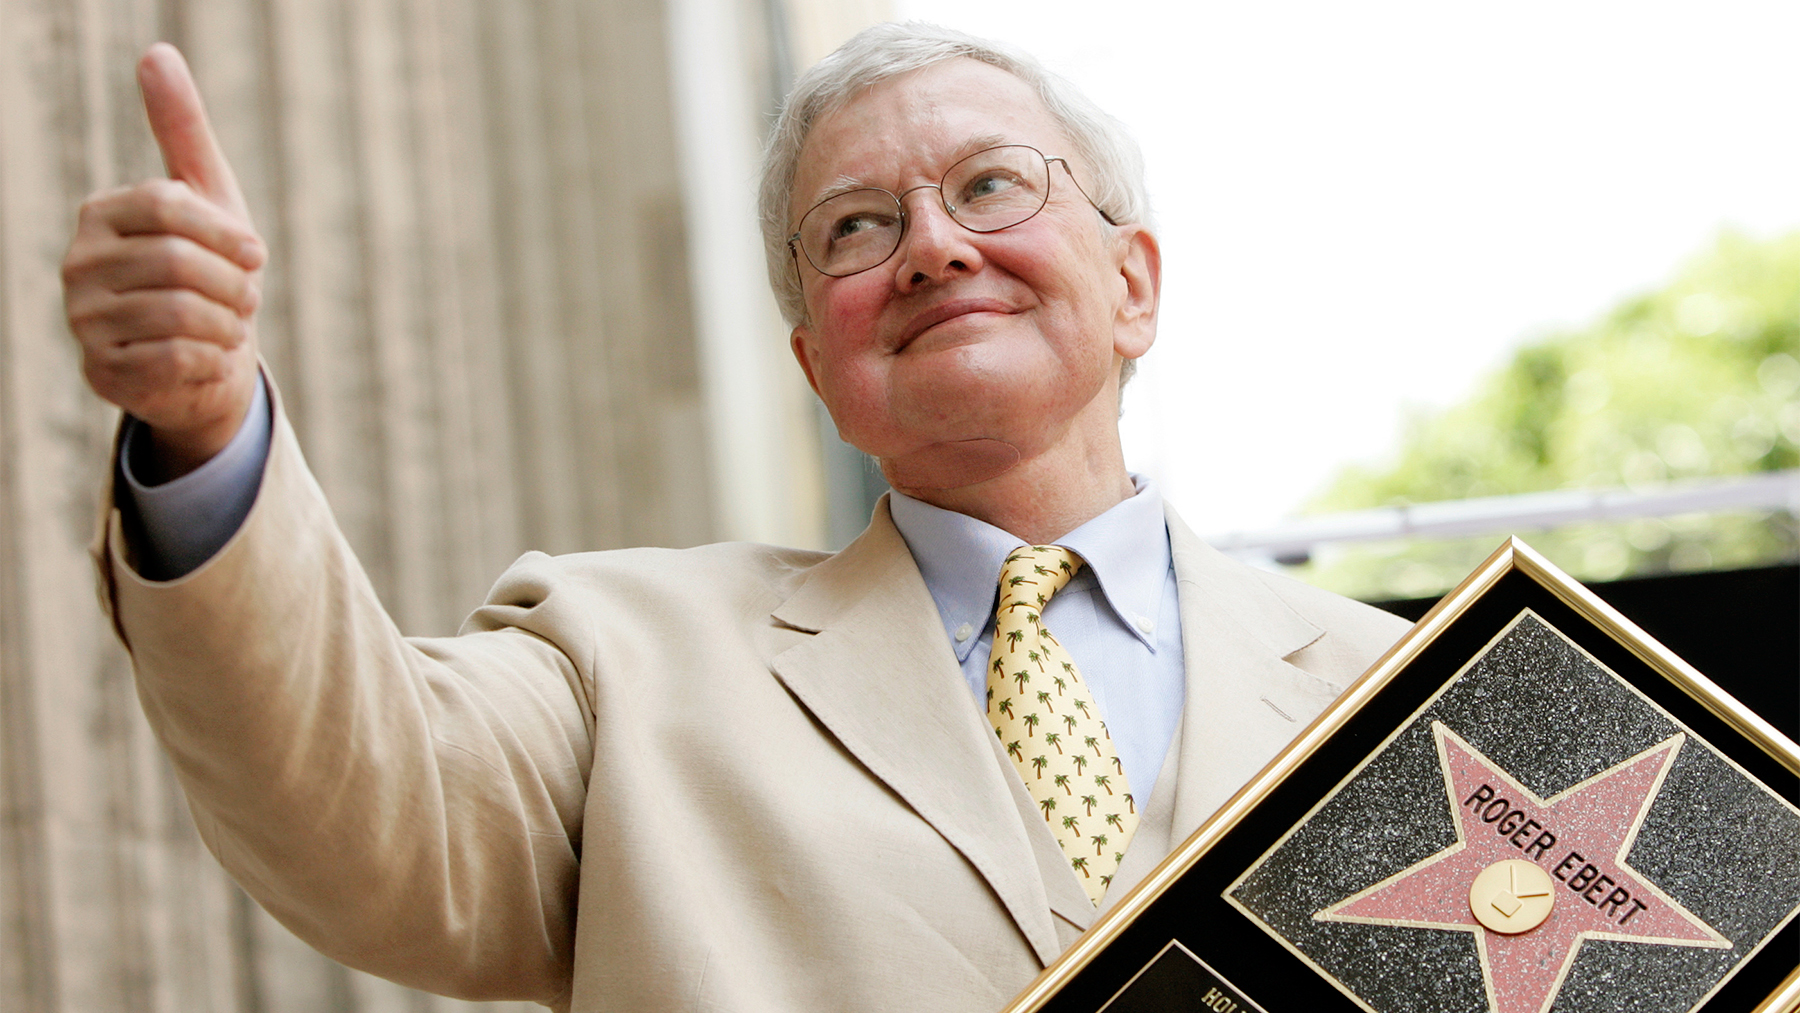 image of the late Roger Ebert by L. Brian Stauffer